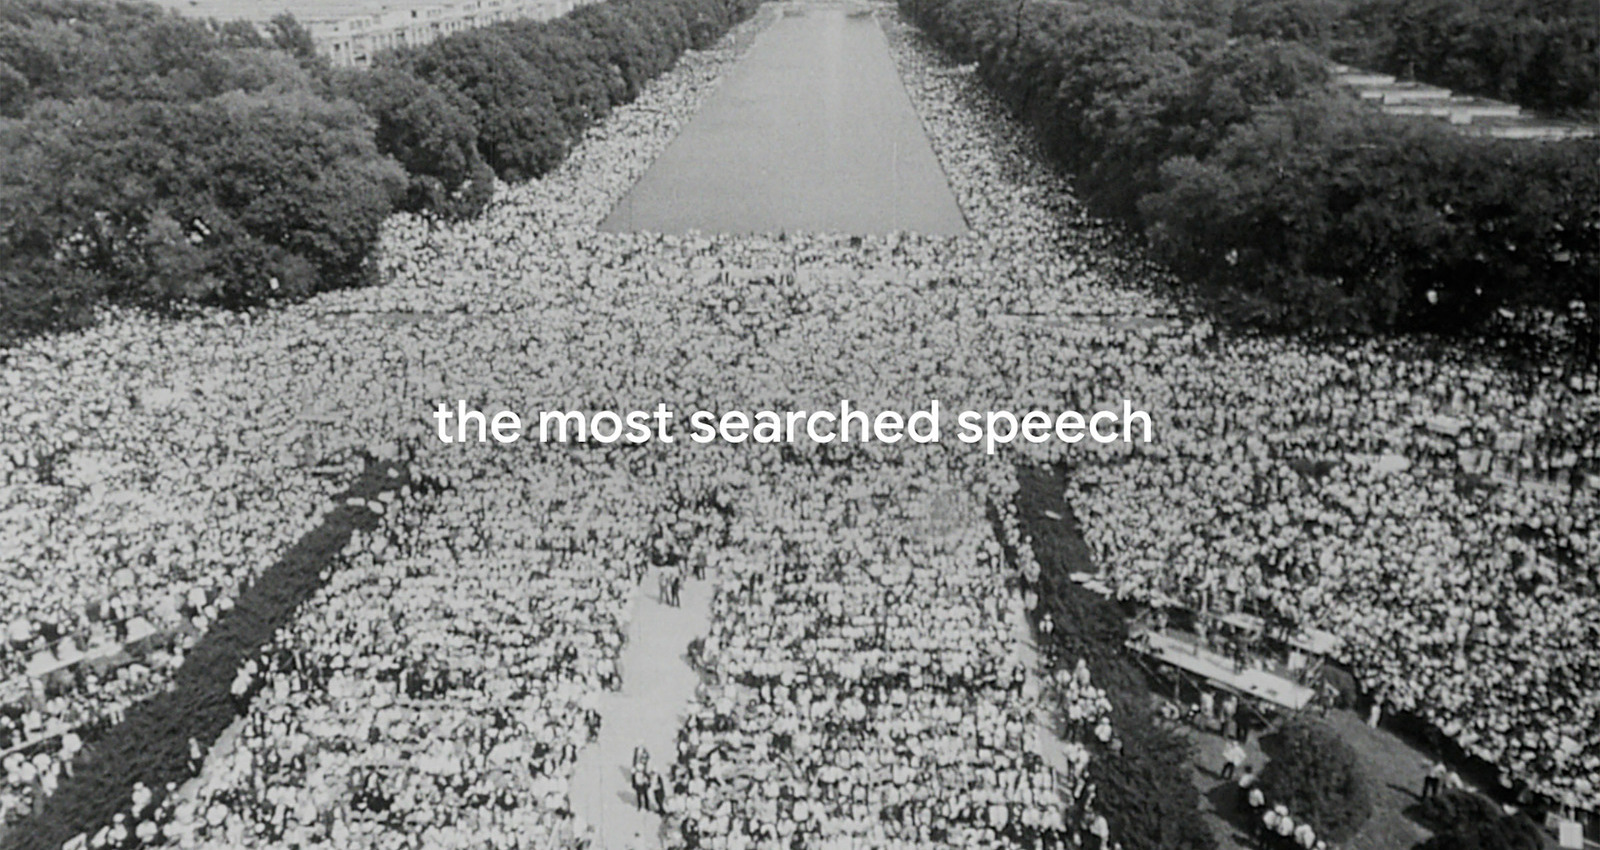 The Most Searched